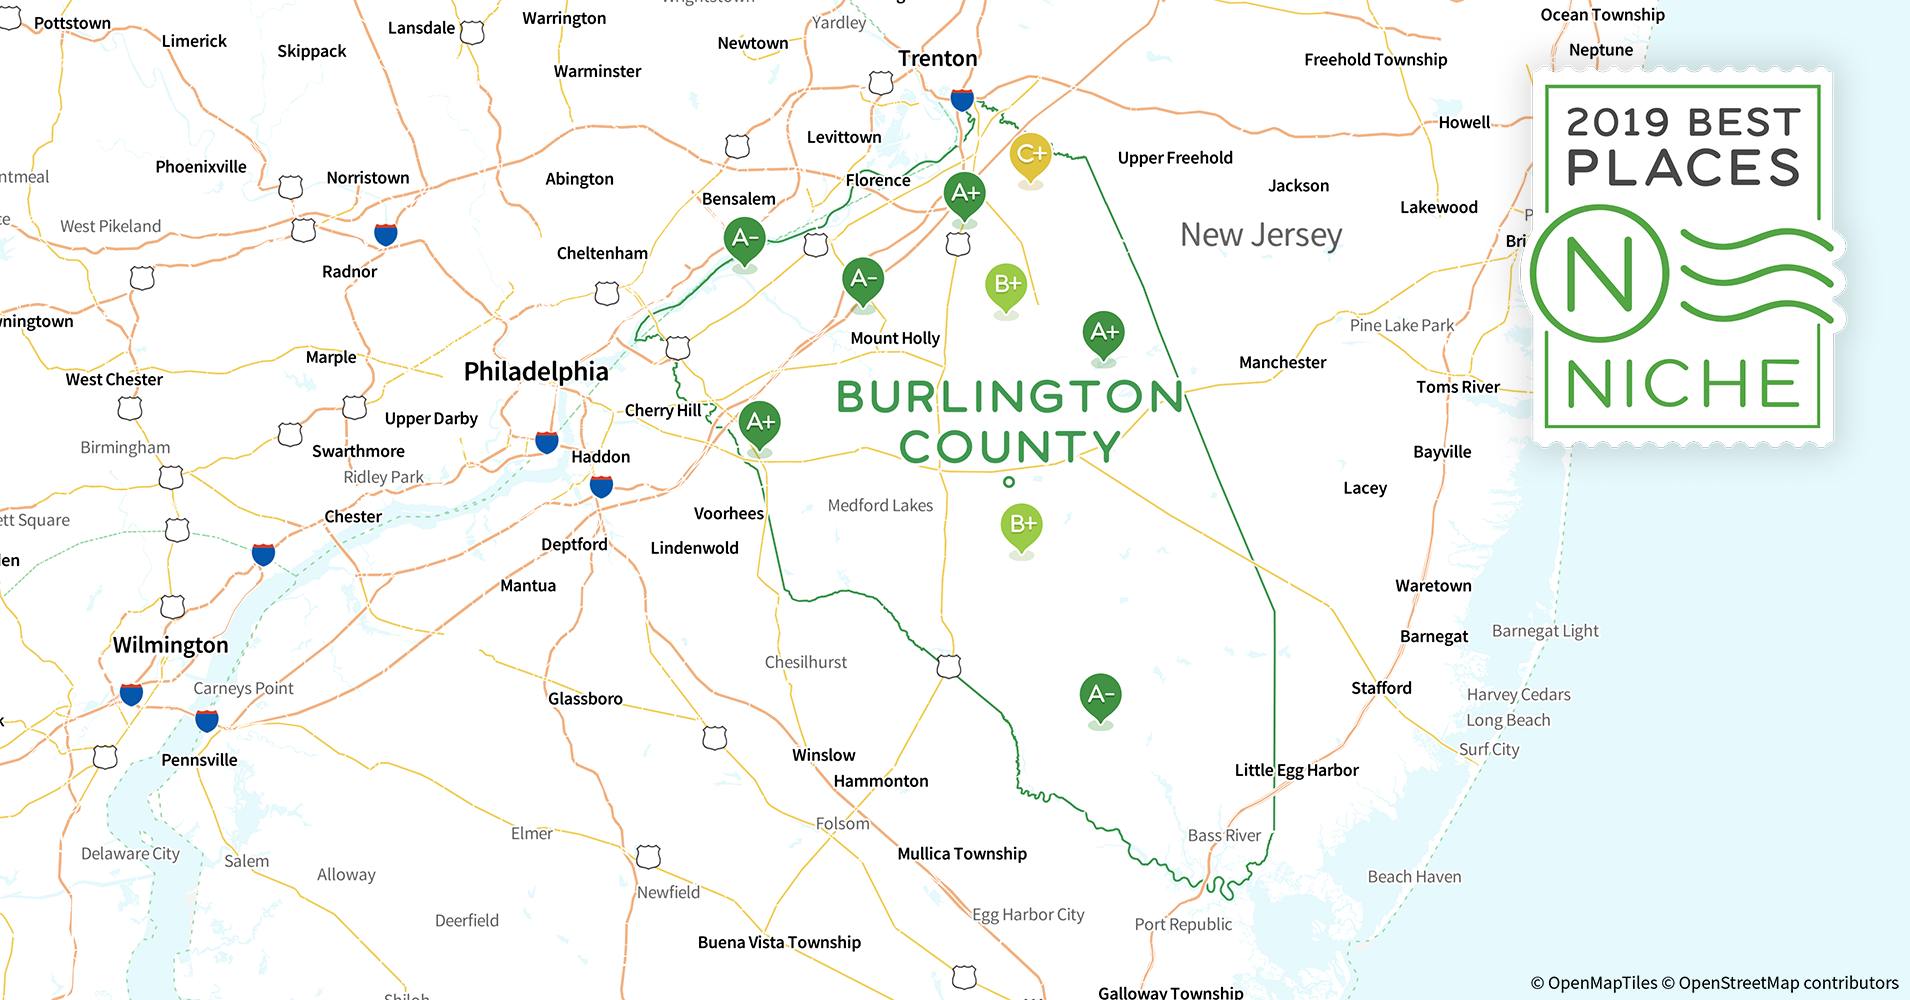 2019 Best Places to Live in Burlington County, NJ - Niche Burlington County Nj Map on cumberland county, camden county, hudson county, monmouth county nj map, middlesex county, westampton nj map, gloucester county nj map, warren county, union county, stafford county nj map, cherry hill nj map, somerset park nj map, bergen county nj map, atlantic county nj map, hunterdon county, somerset county, south bound brook nj map, lakehurst nj map, cape may county, mount laurel nj map, cumberland county nj map, vista center nj map, monmouth county, mercer county, passaic county, mercer county nj map, historic smithville nj trail map, south jersey, essex county, salem county nj map, atlantic county, ocean county nj map, gloucester county, wharton state forest nj map, bergen county, blue anchor nj map, ocean county, morris county, bordentown nj map,